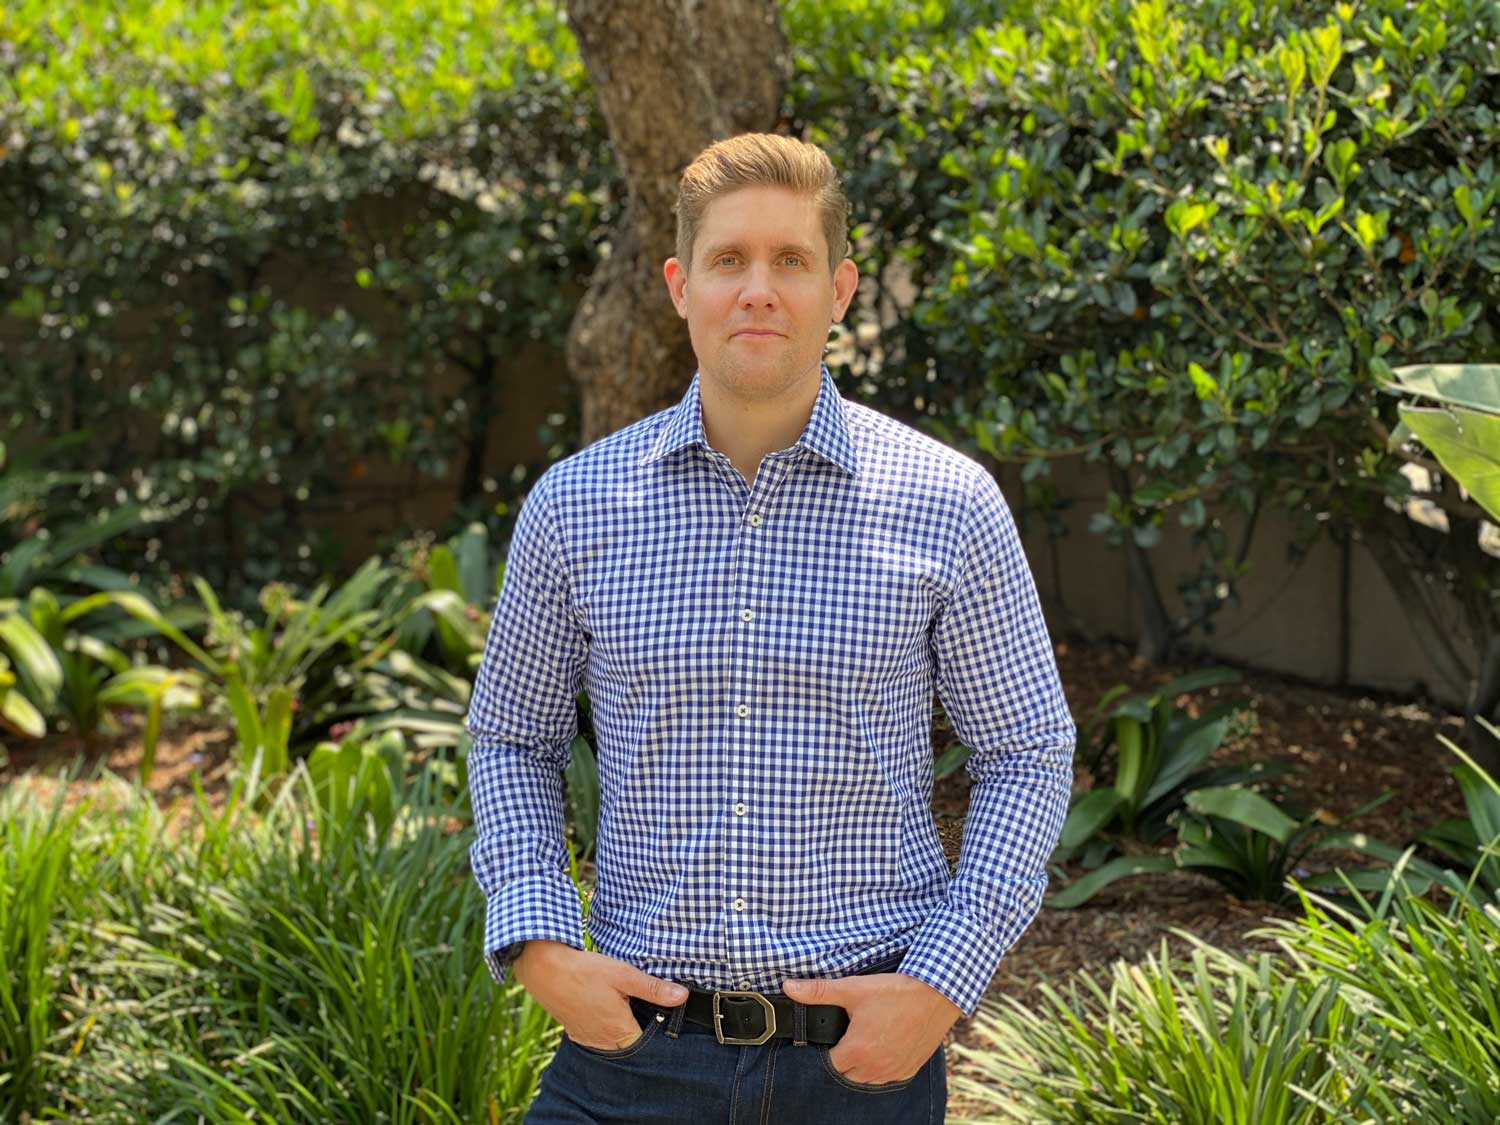 Marketing consultancy Venntifact opens Brisbane office led by ex-PwC's James Wawne